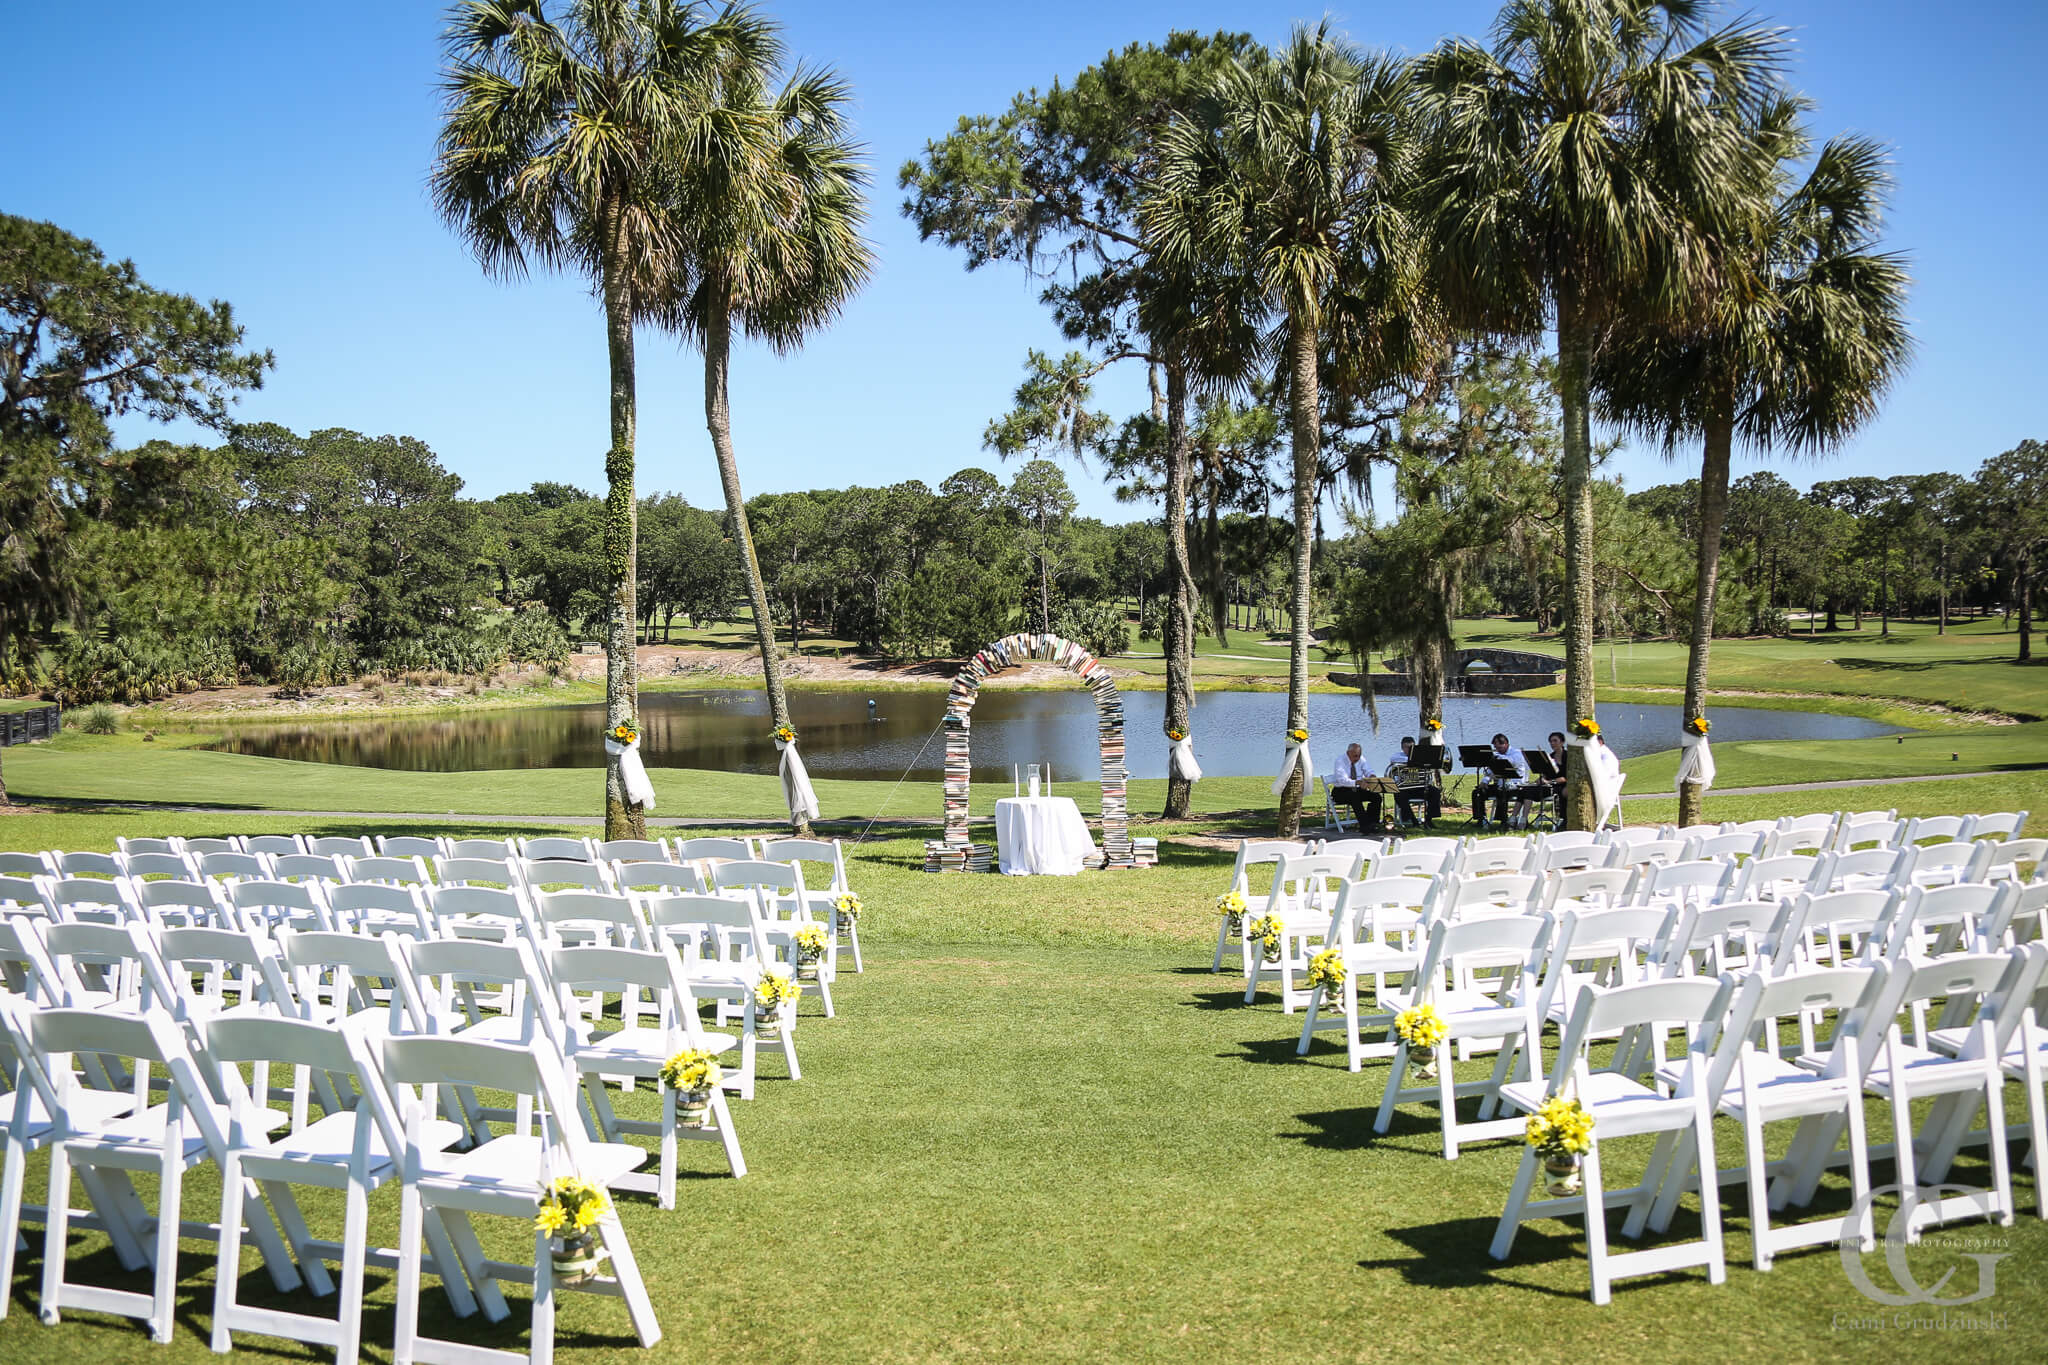 Garden wedding ceremony with golf course backdrop with book arch